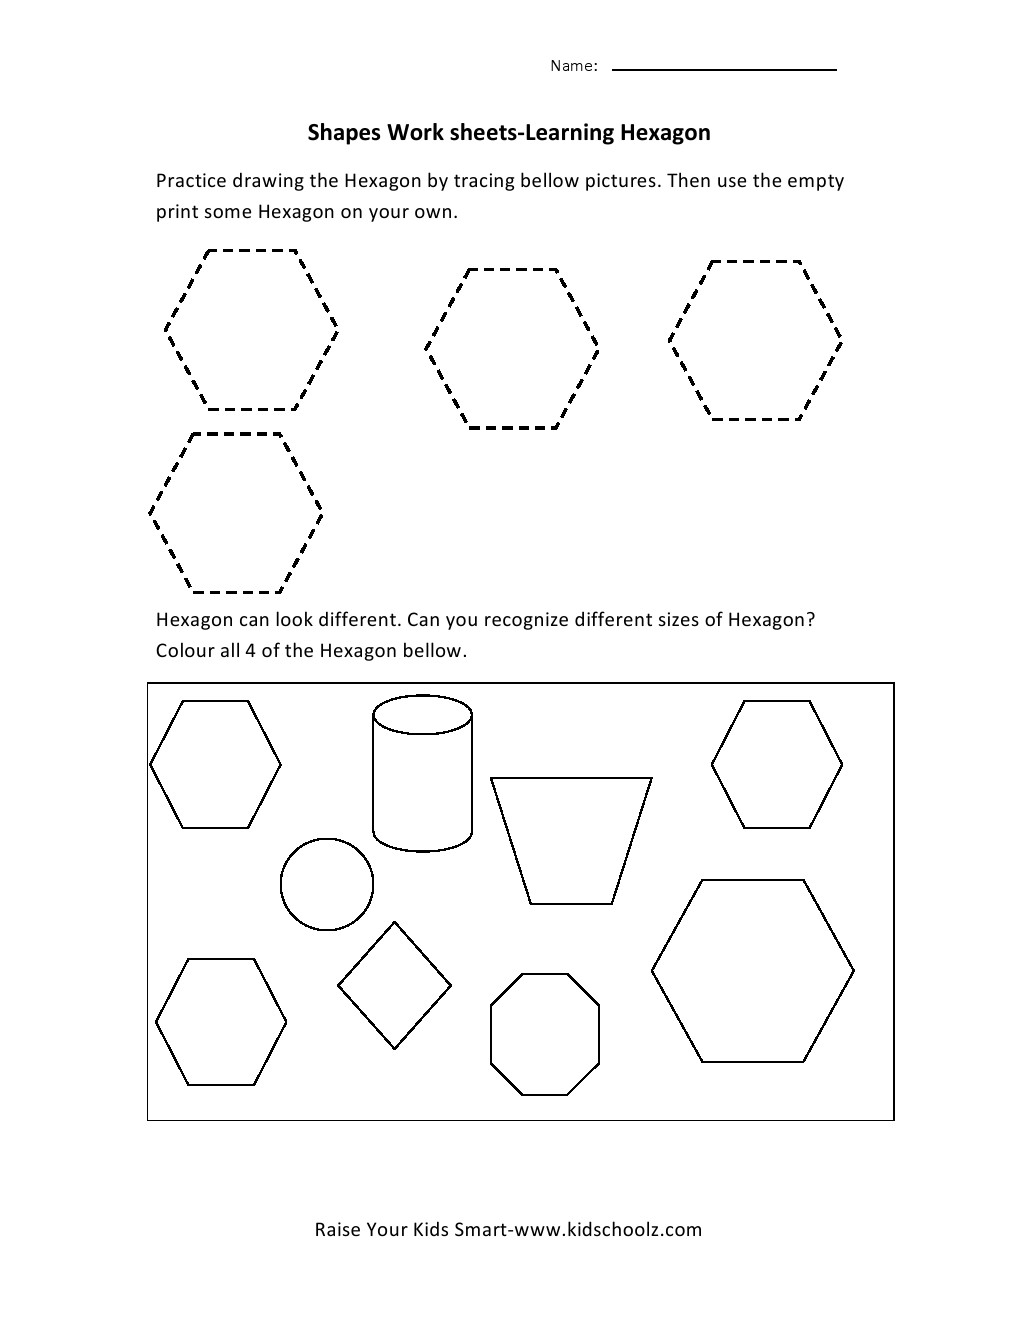 Worksheet Hexagon Worksheets learning shapes worksheets hexagon hexagon